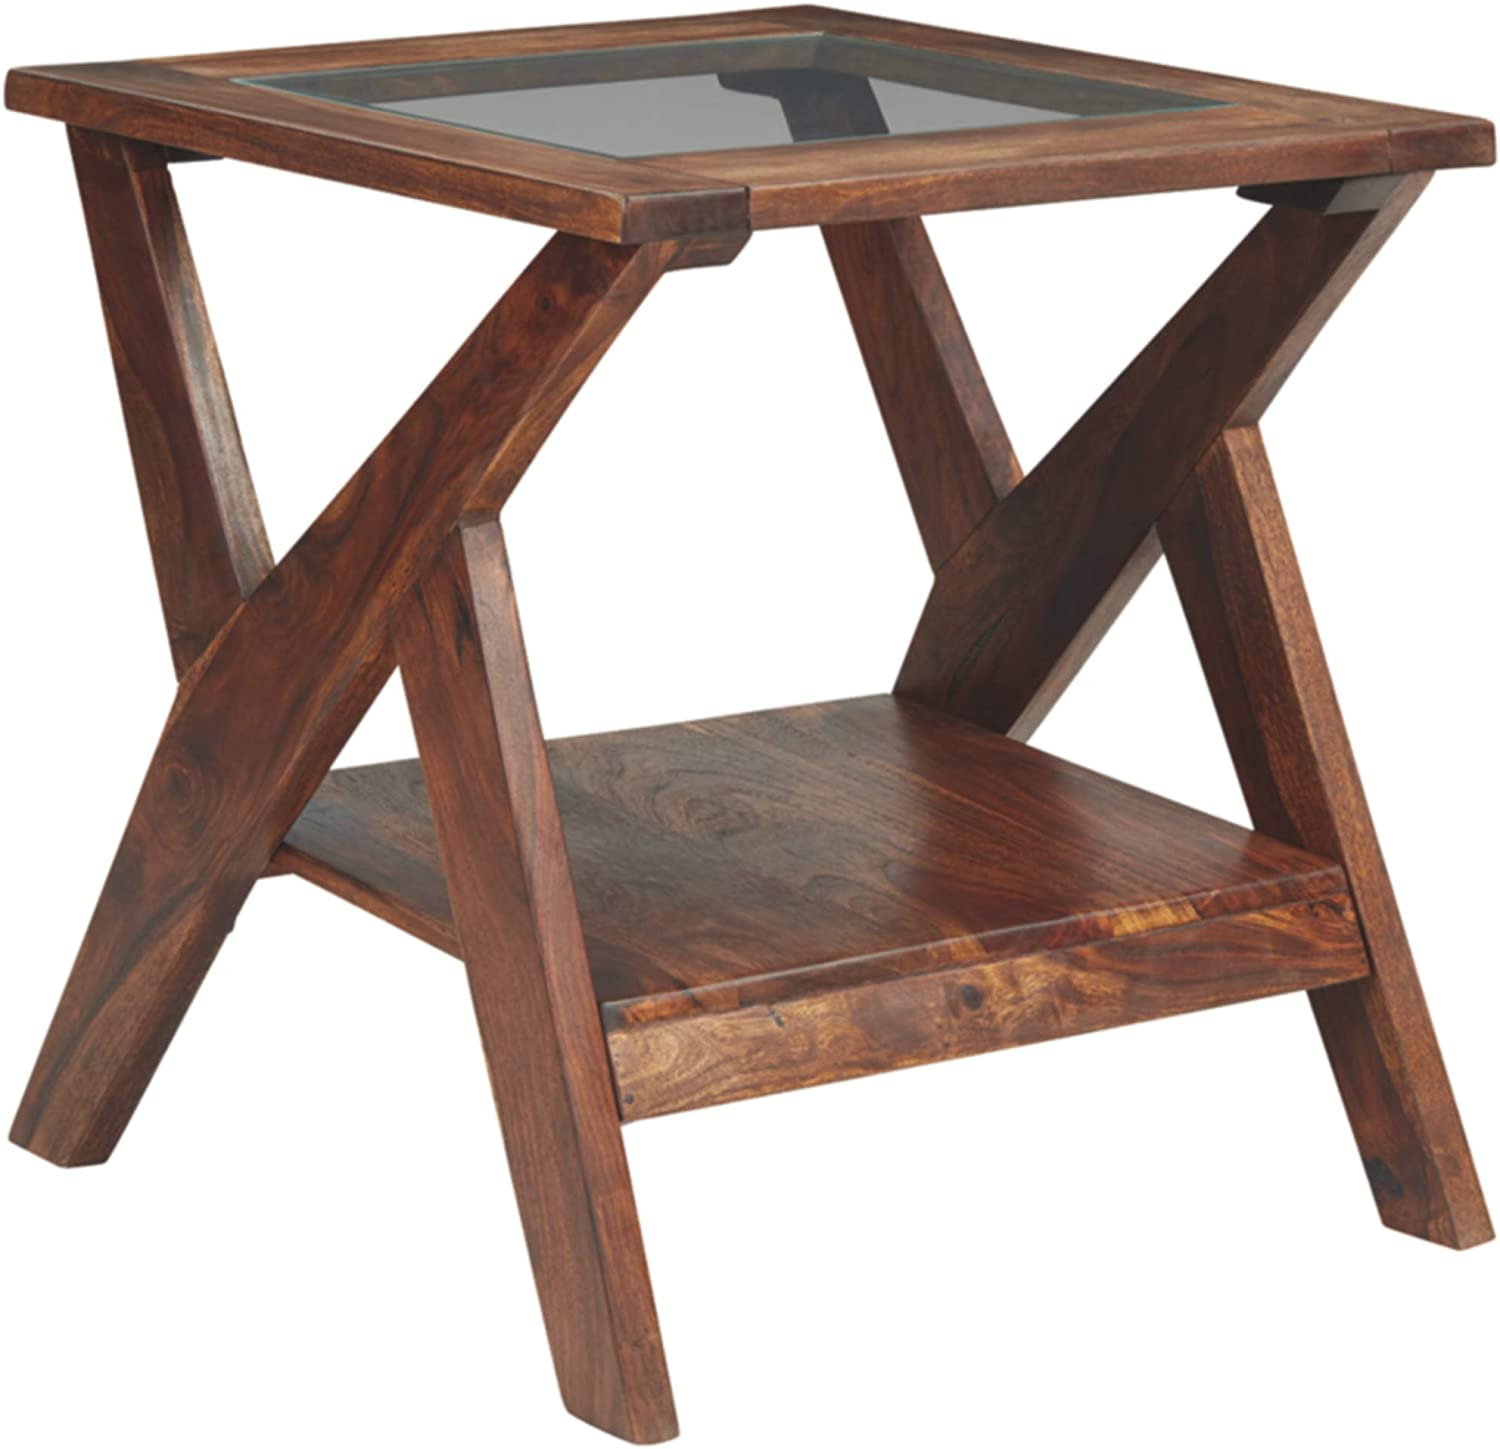 Signature Design by Ashley - Charzine Rectangular Wood End Table, Warm Brown